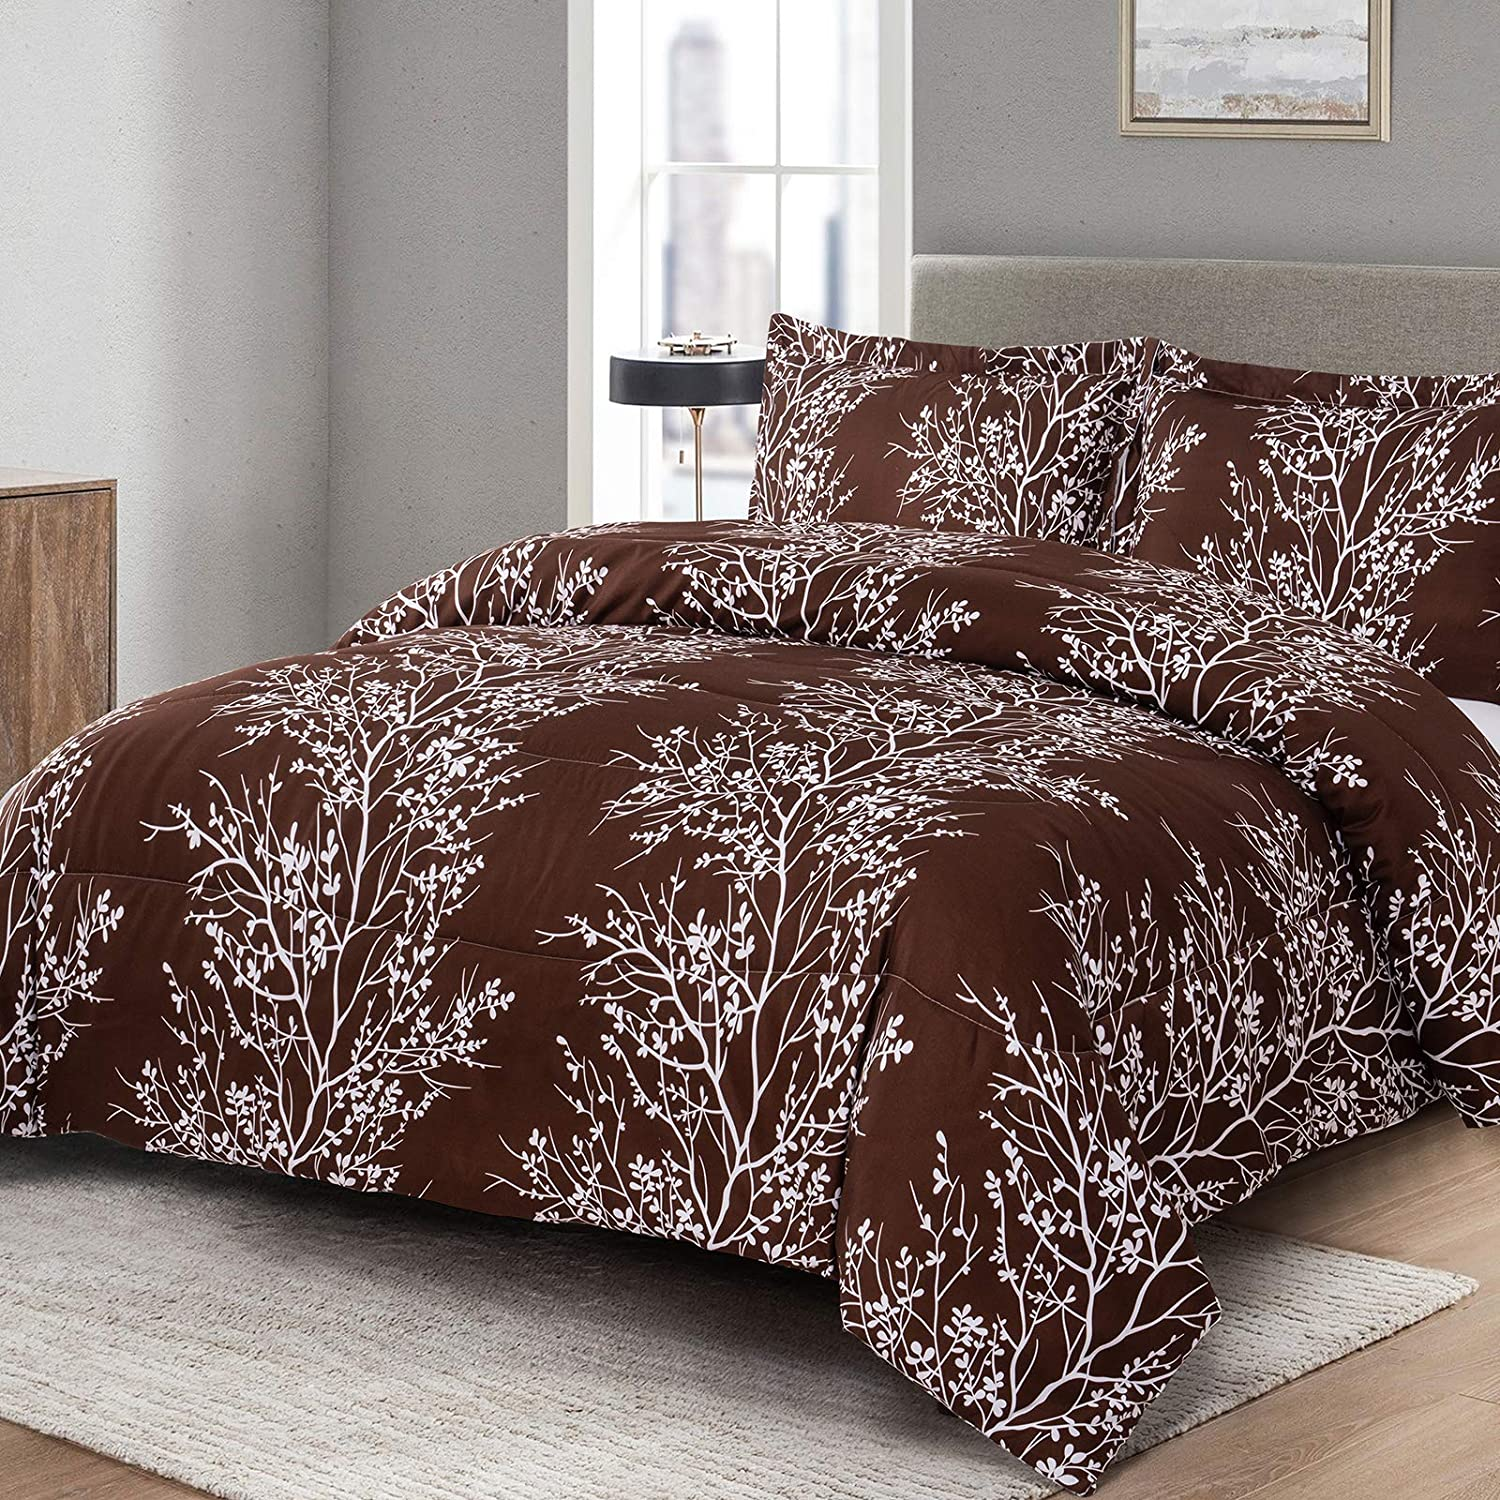 Shatex King Comforter Sets 3 Pieces Bedding Comforter Sets King Set– Ultra Soft 100% Microfiber Polyester – Comforter with 2 Pillow Shams (Branches, King)